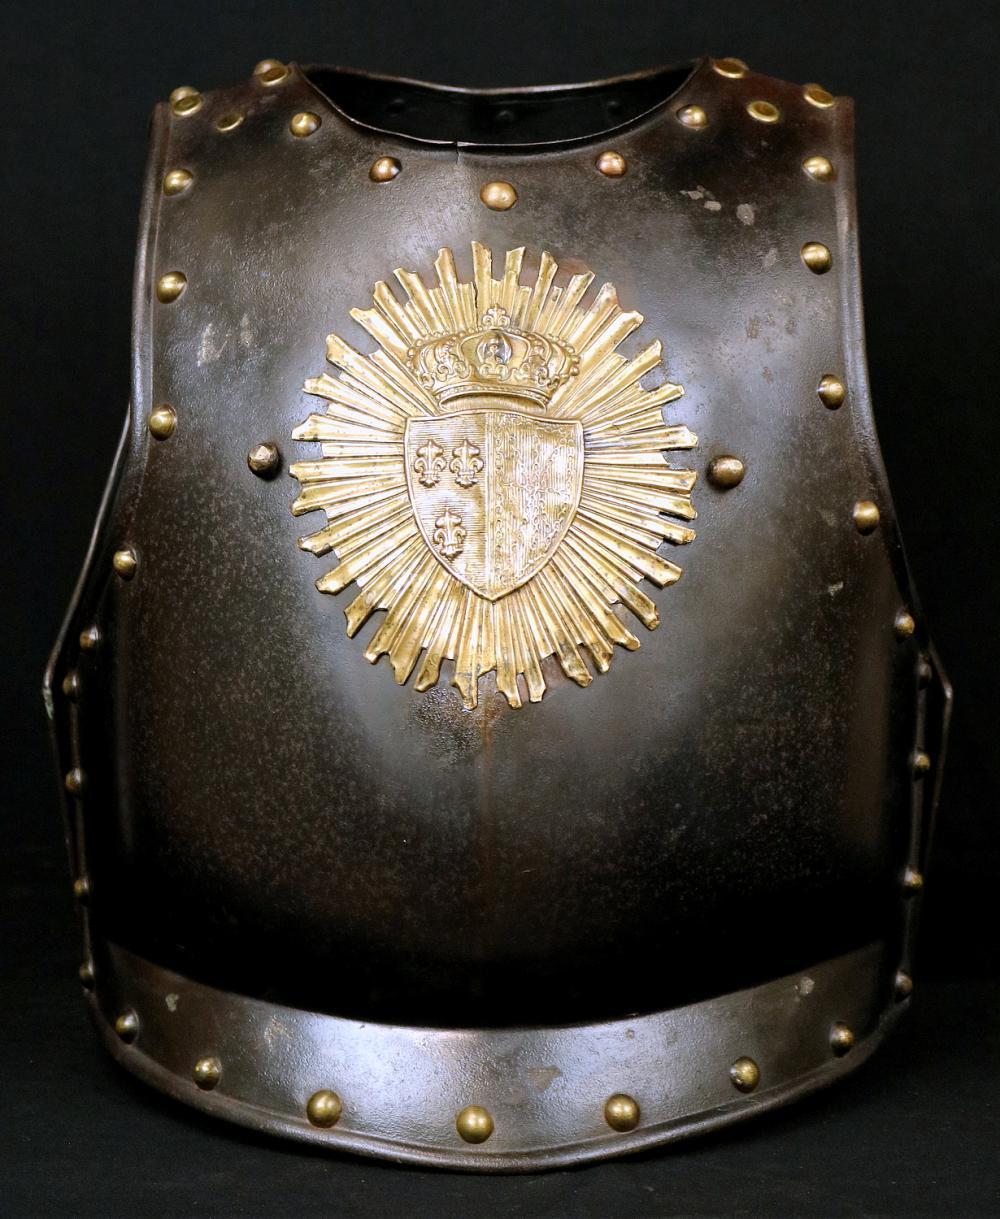 An Attractive French Napoleonic Era Officer's Cuirass Armor